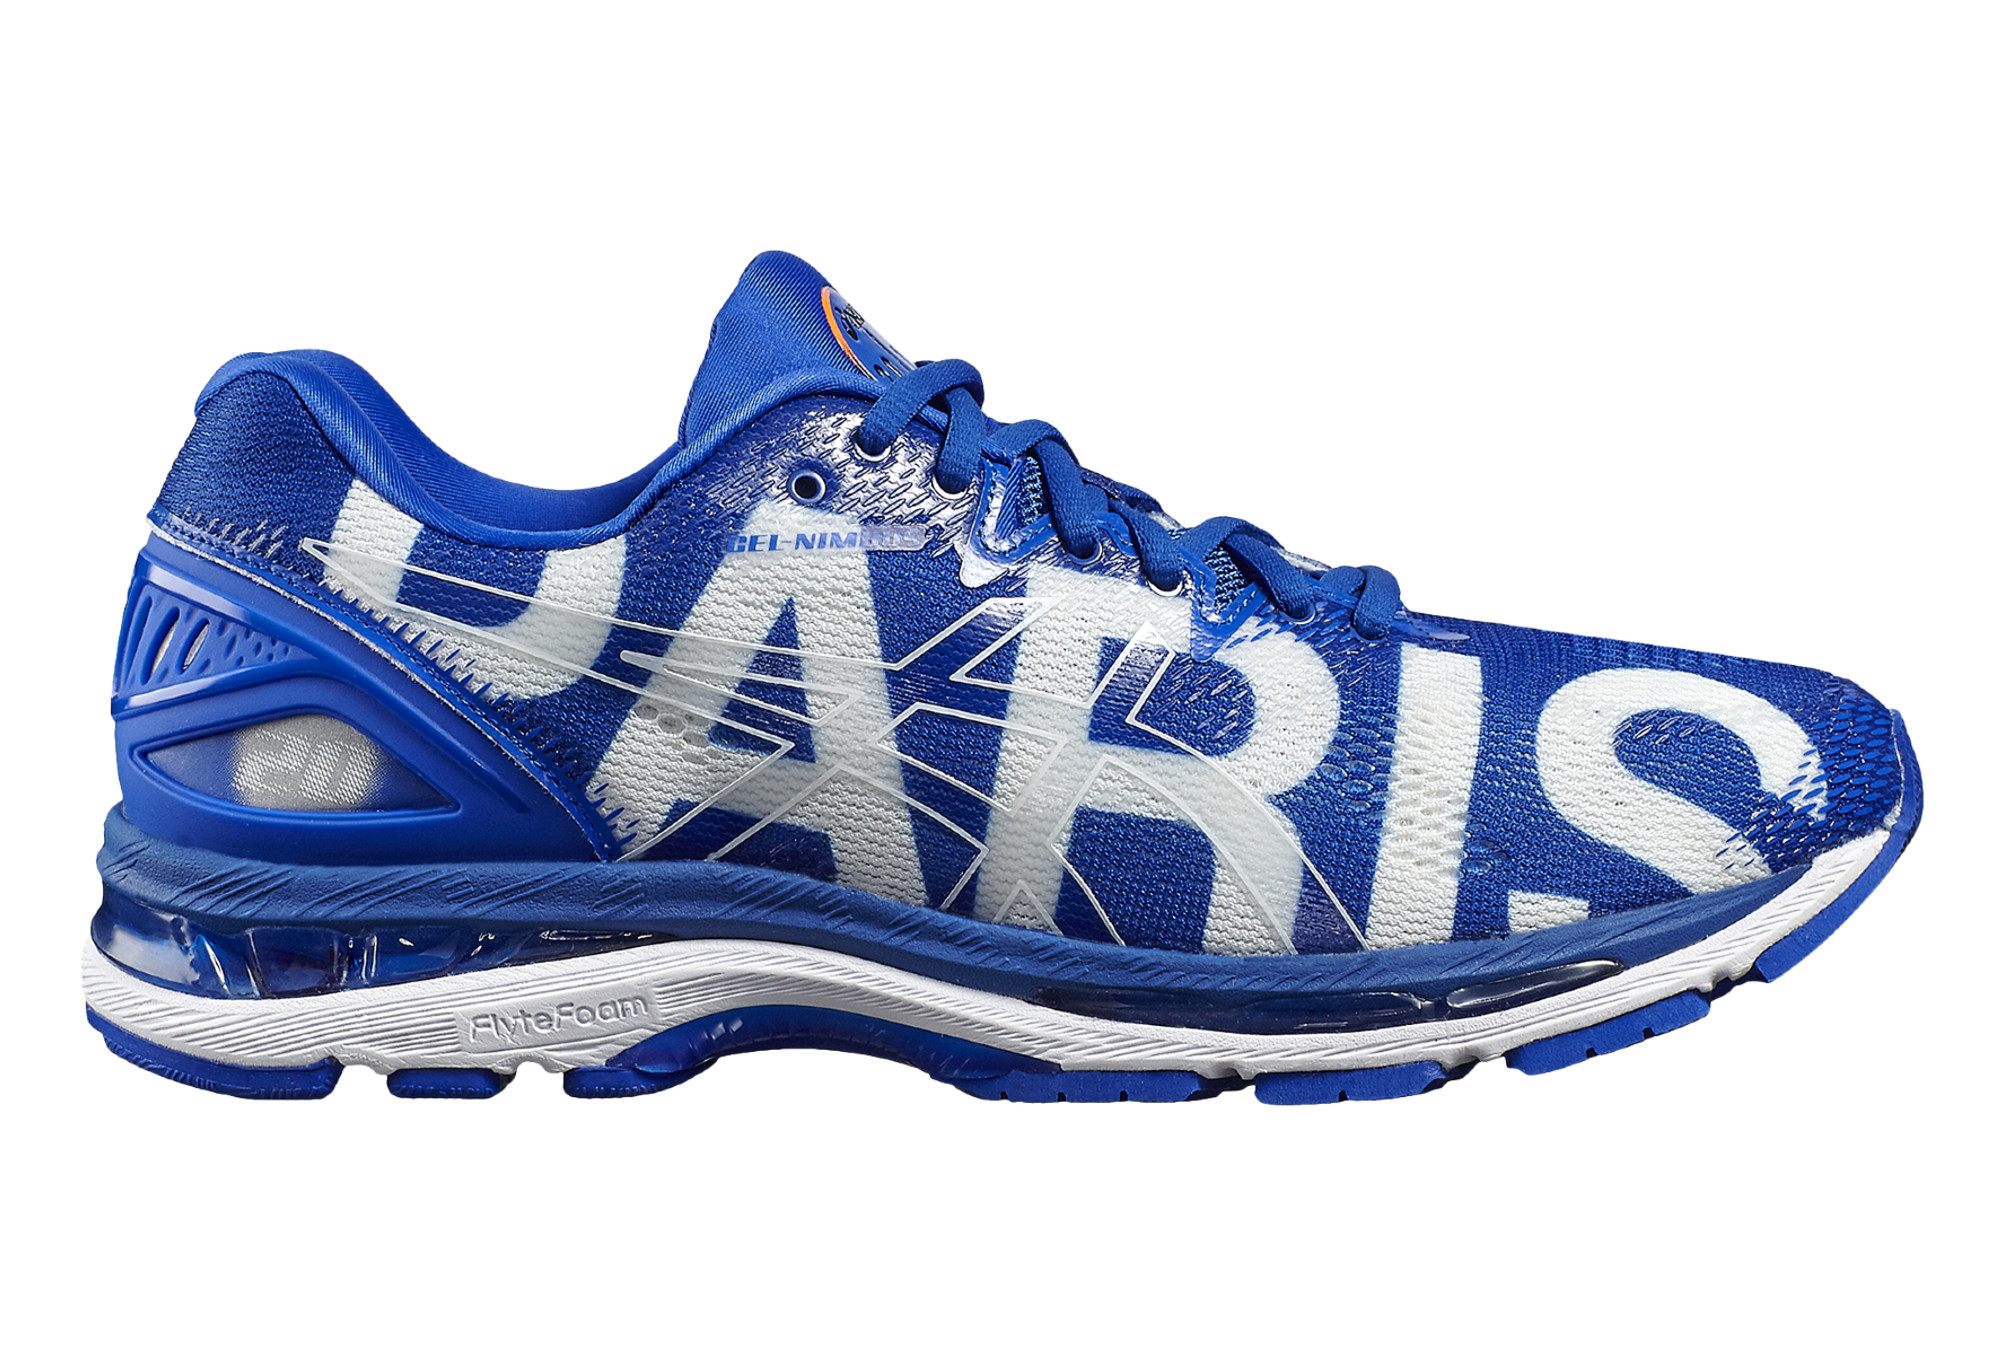 chaussures de running asics gel nimbus 20 paris marathon blanc bleu. Black Bedroom Furniture Sets. Home Design Ideas